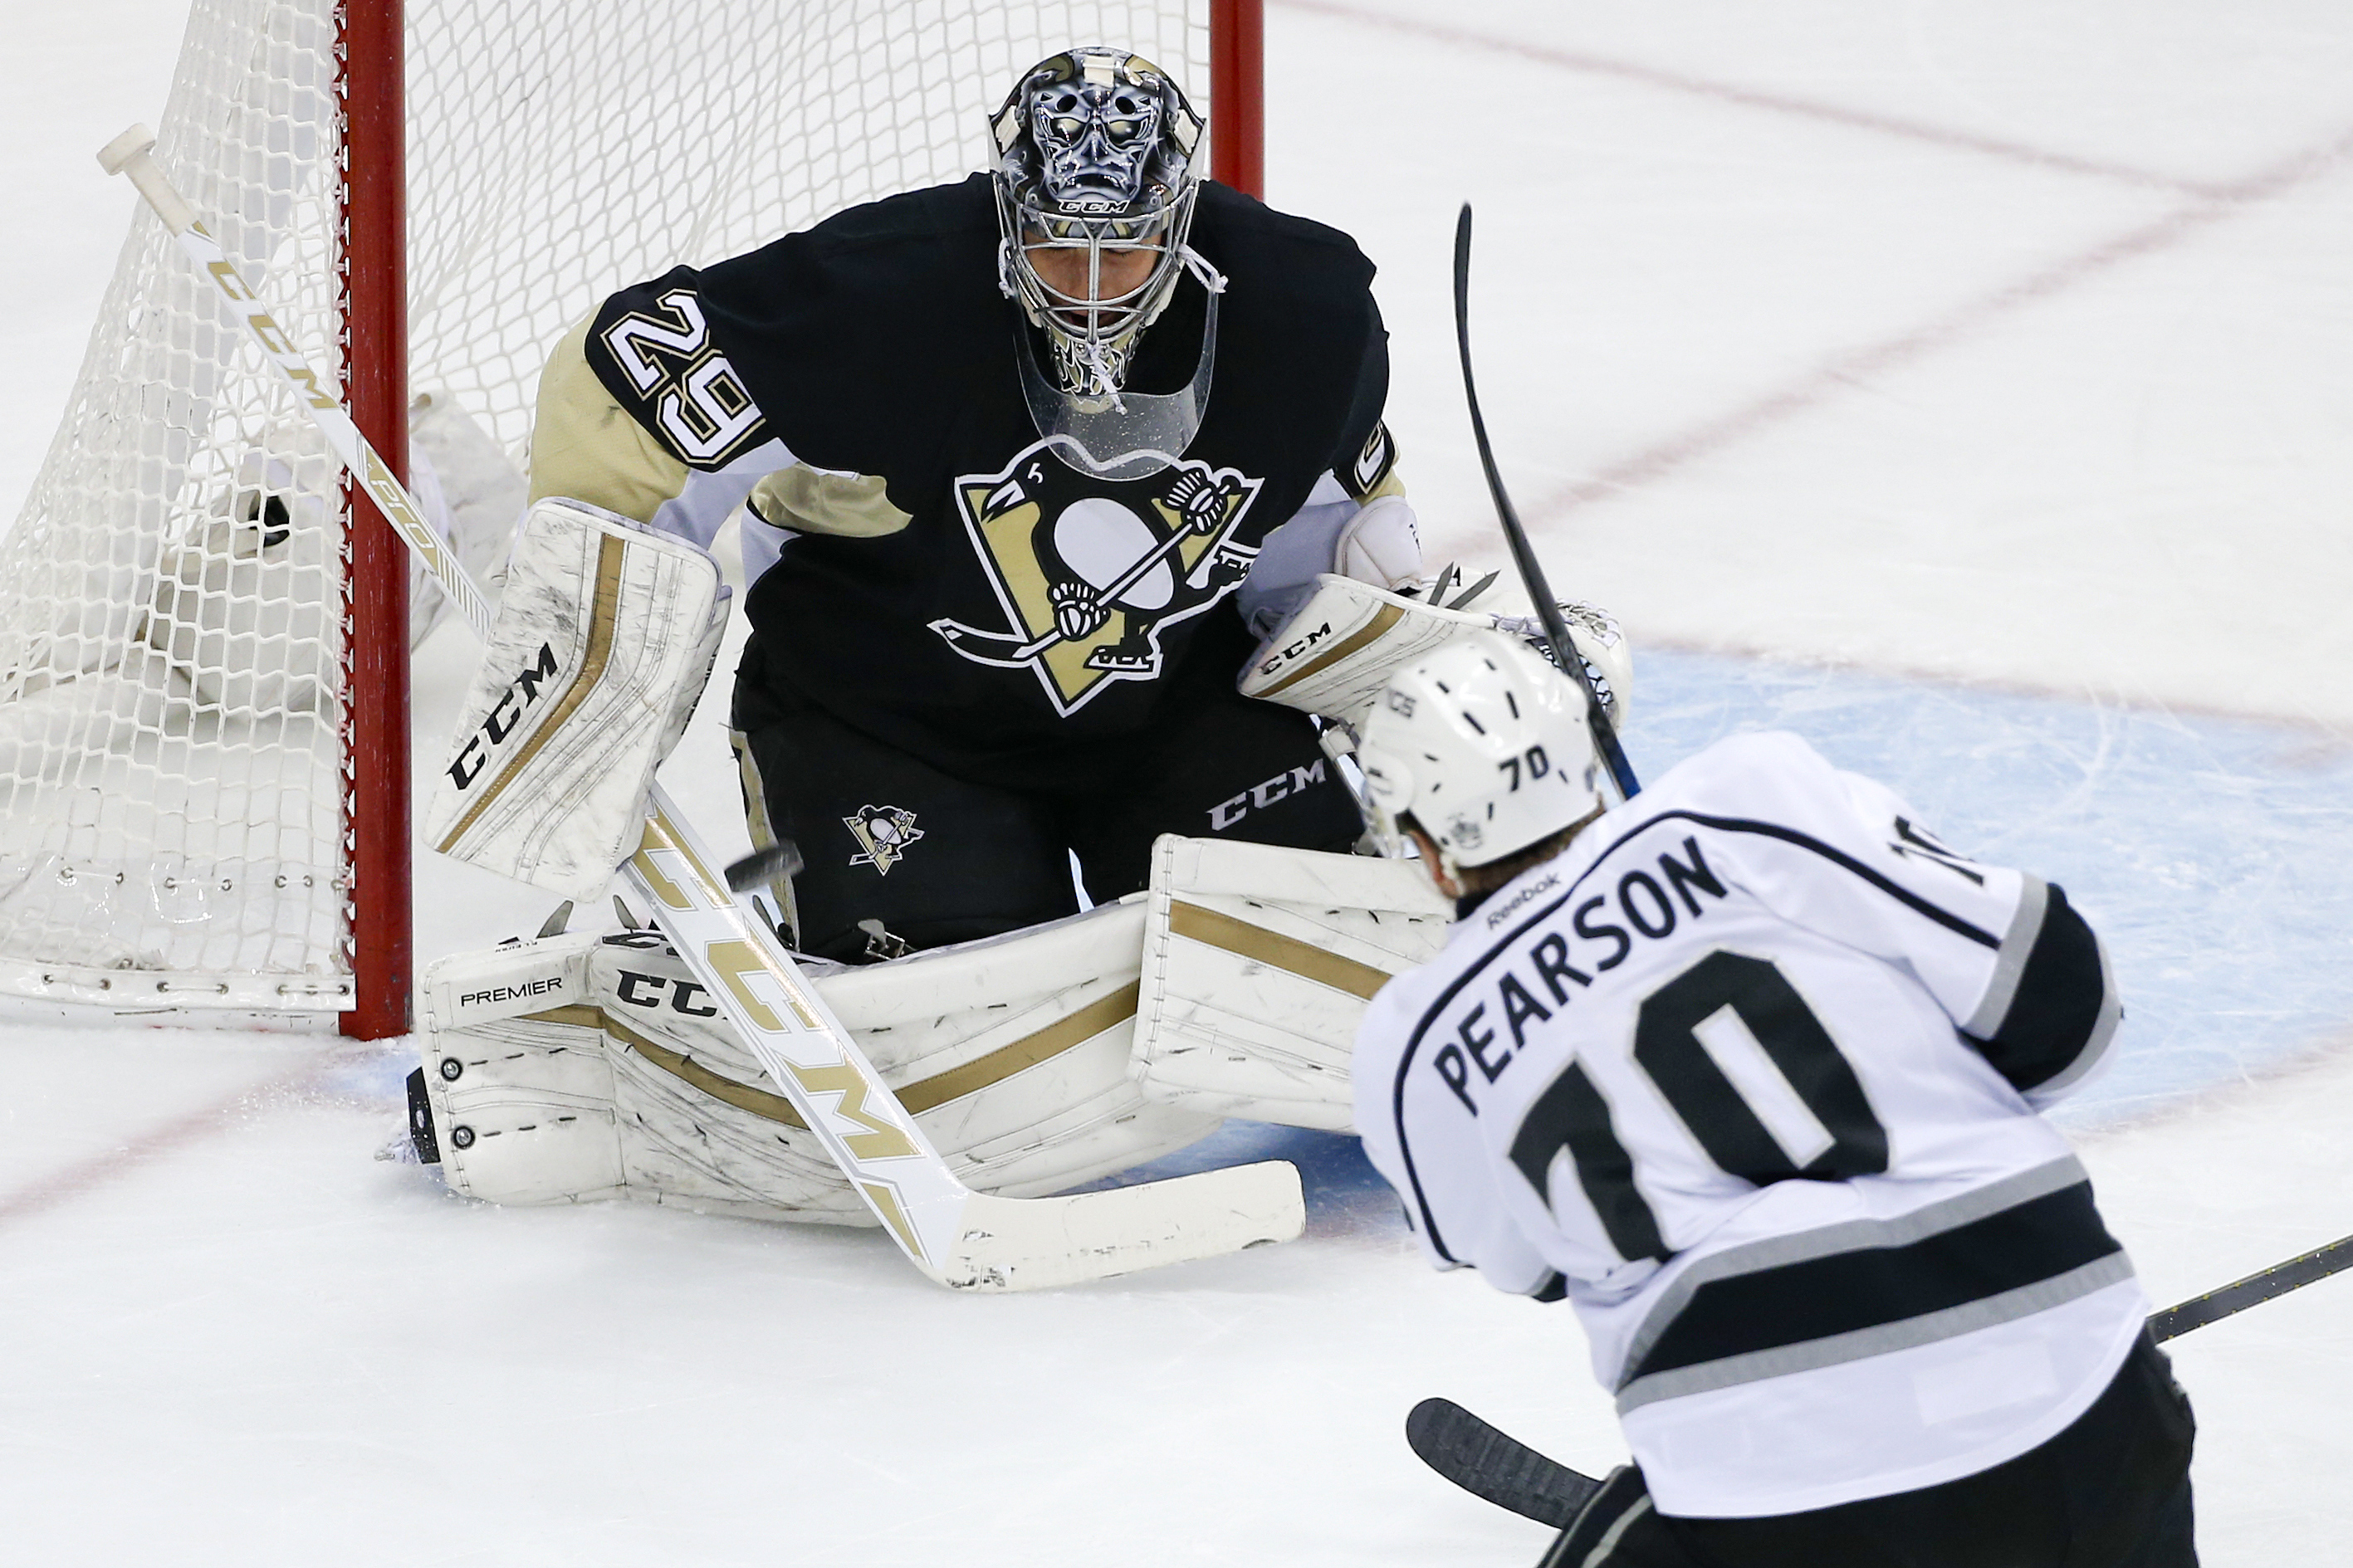 Los Angeles Kings' Tanner Pearson (70) fires a shot past Pittsburgh Penguins goalie Marc-Andre Fleury (29) for a goal during the first period of an NHL hockey game in Pittsburgh, Friday, Dec. 11, 2015. (AP Photo/Gene J. Puskar)